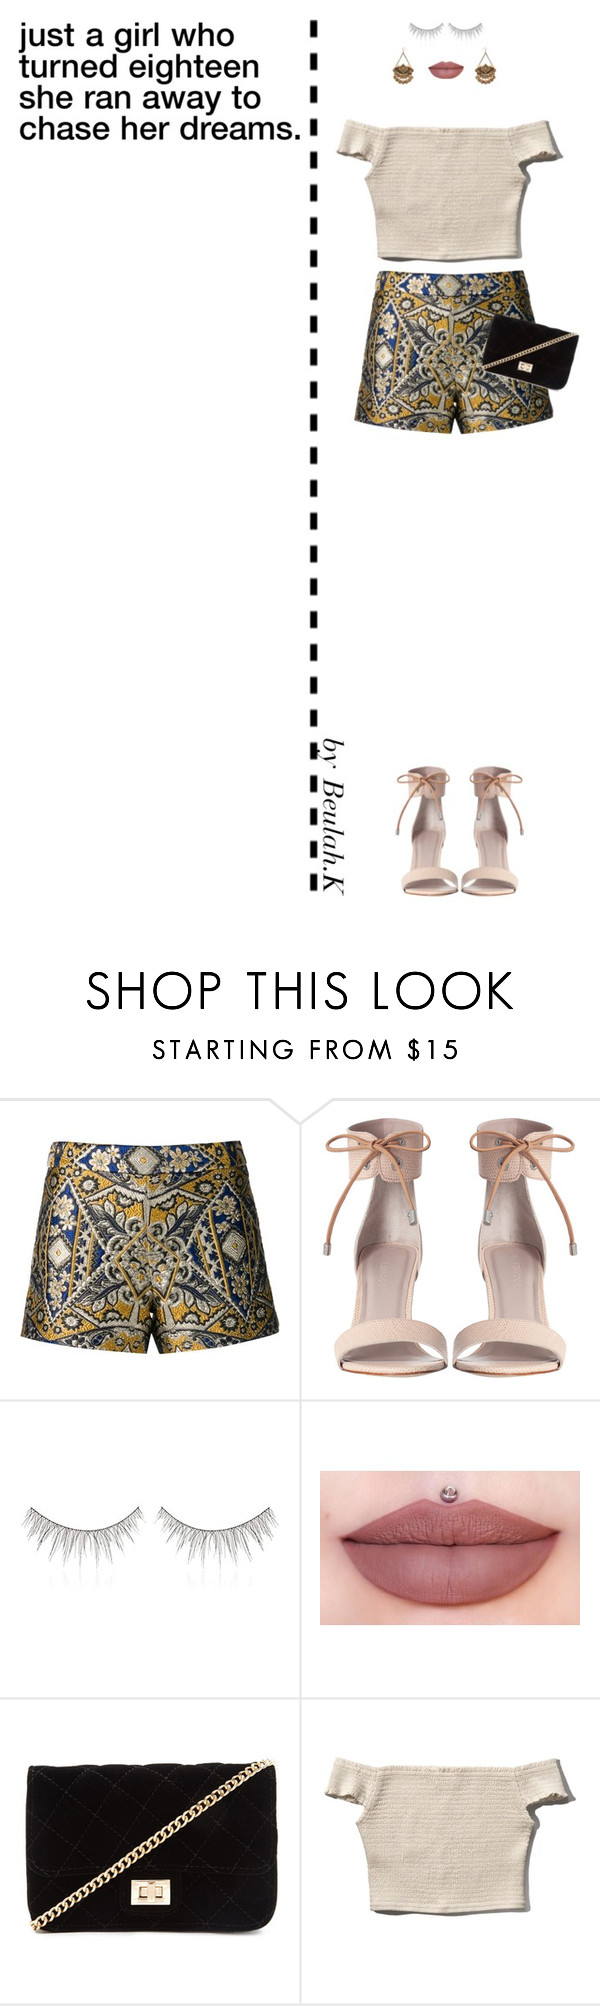 """""""25.11.15"""" by beulah-k ❤ liked on Polyvore featuring moda, Alice + Olivia, Zimmermann, shu uemura, Jeffree Star, Forever 21 i Abercrombie & Fitch"""